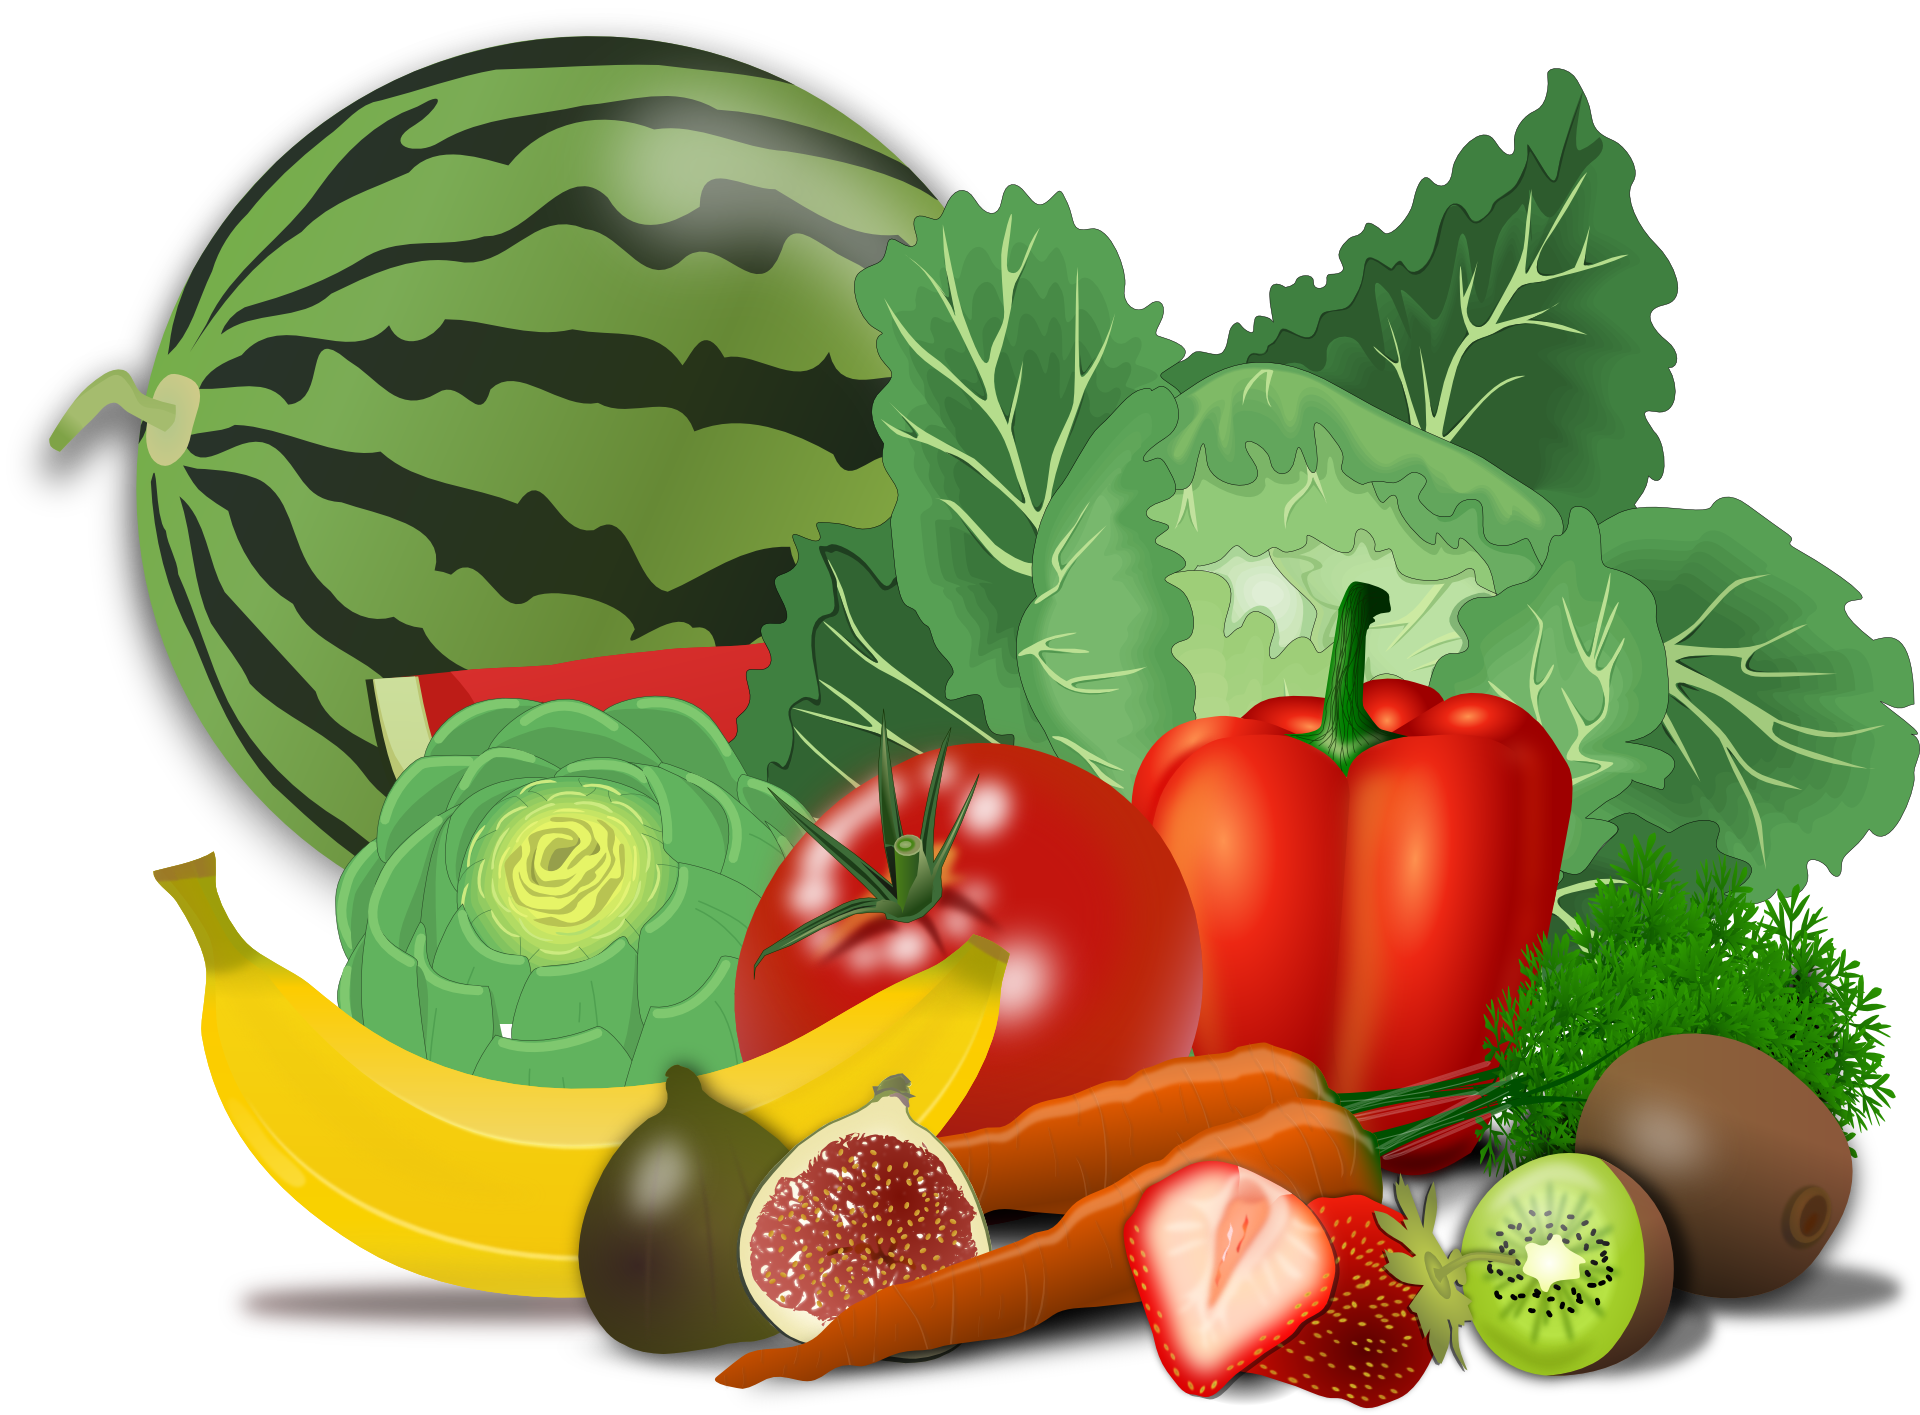 Vegetables drawing png. Of healthy food fruit